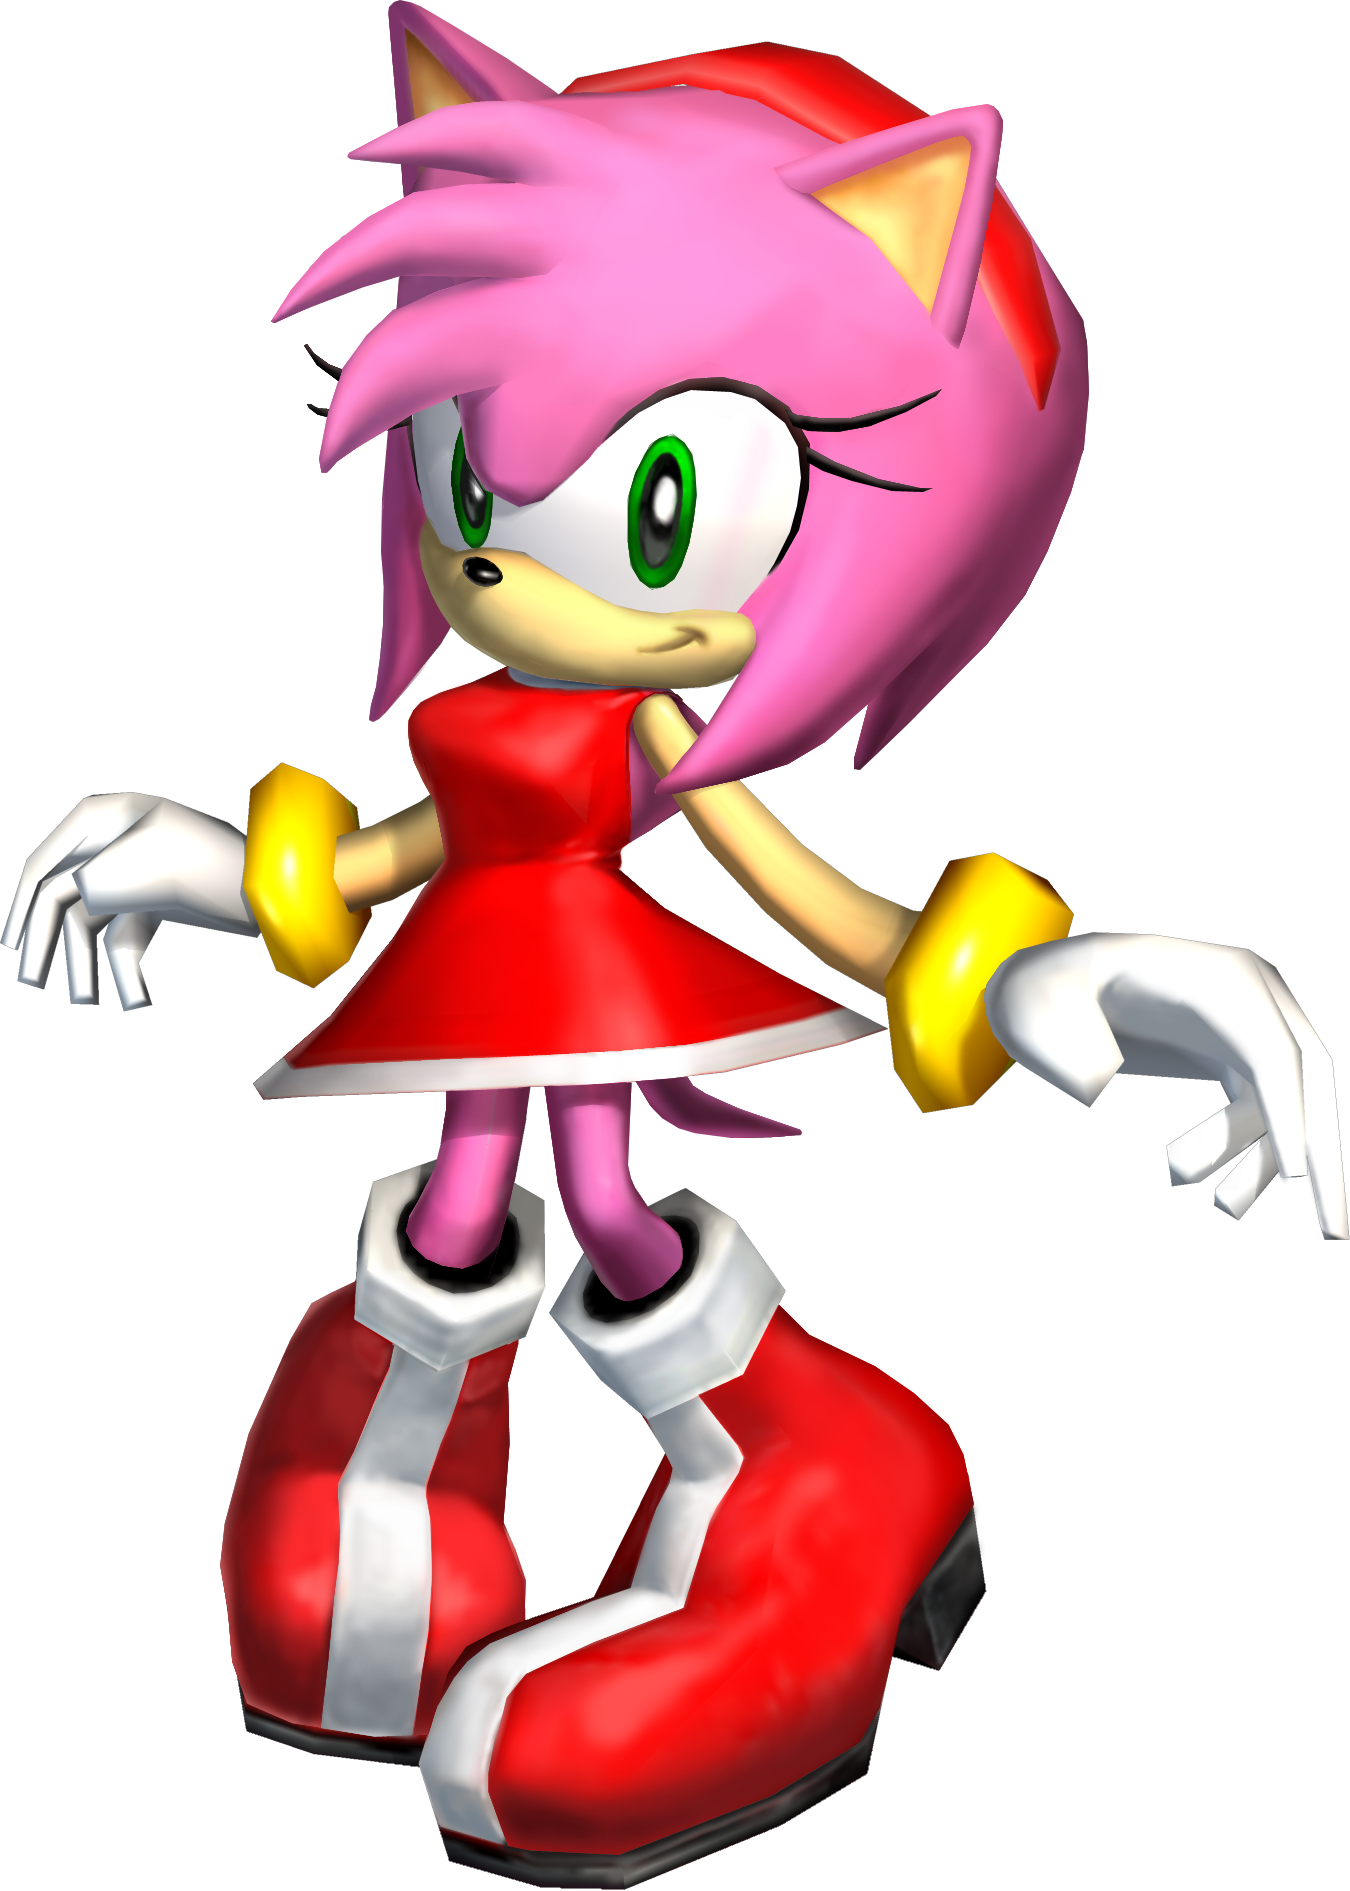 sonic adventure 2 battle – 3d - amy rose - gallery - sonic scanf